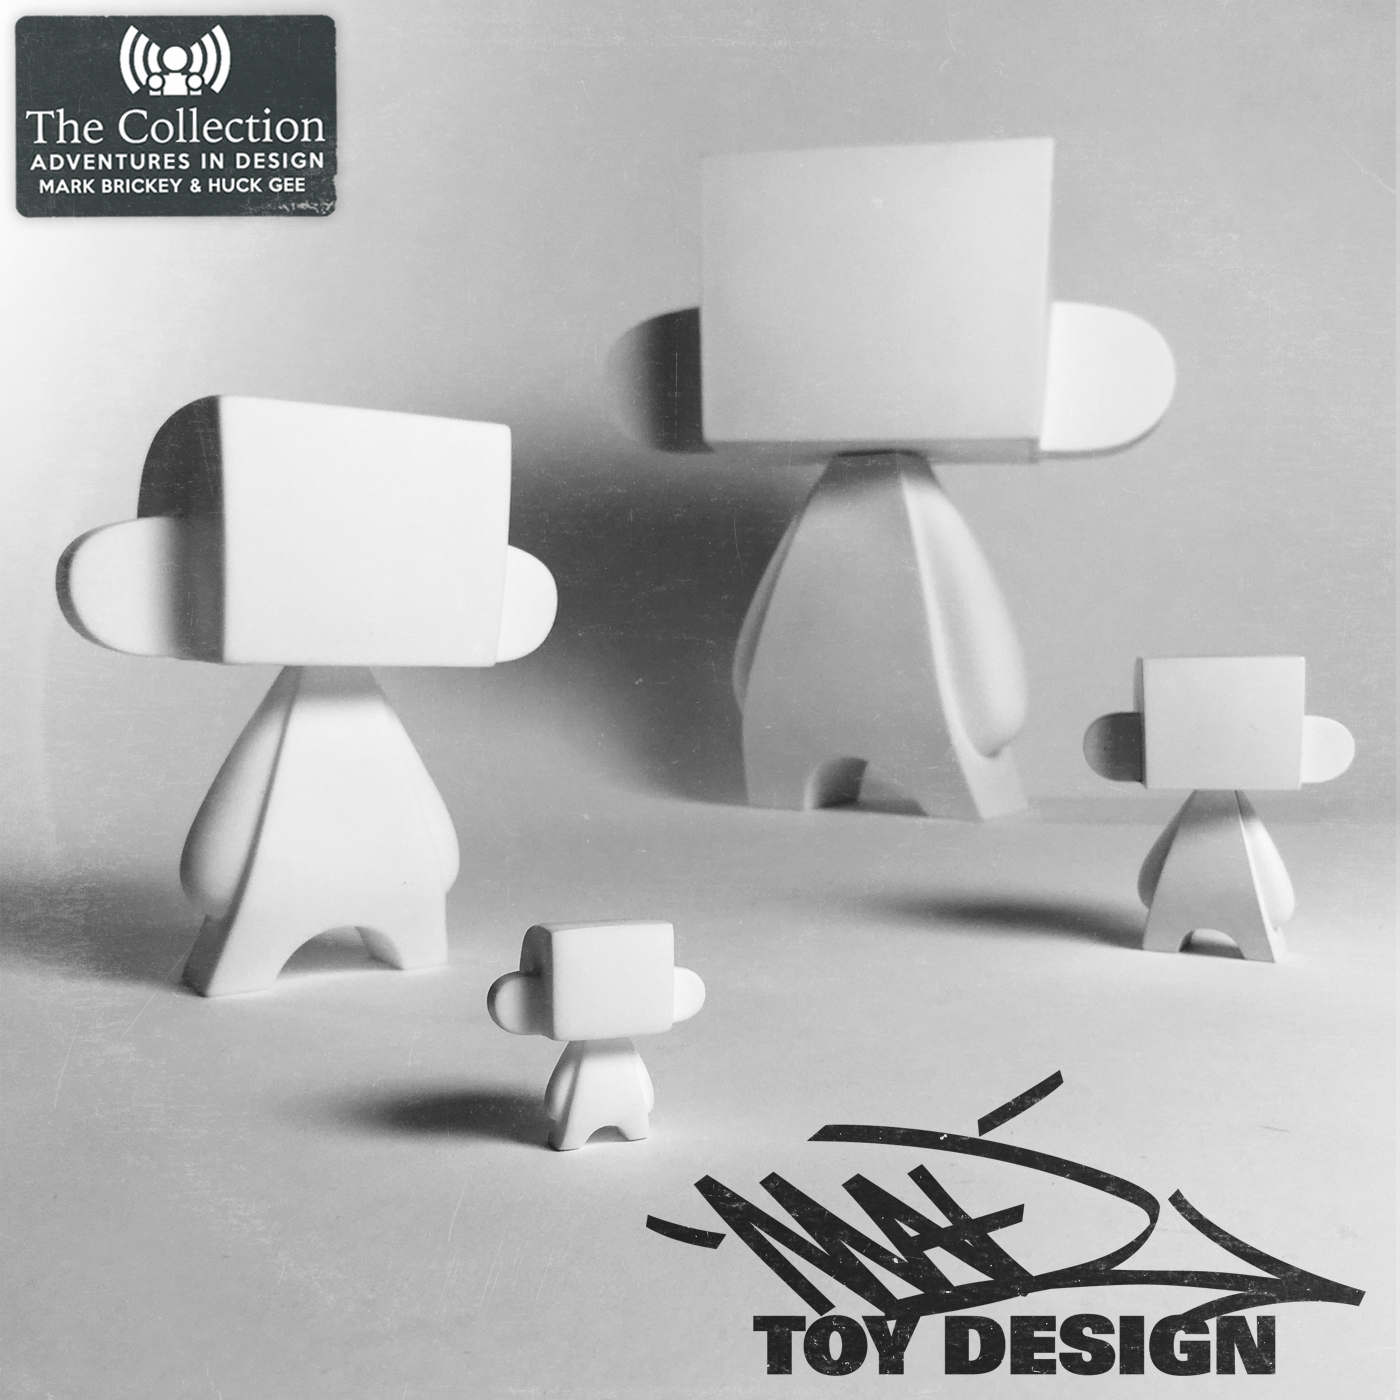 523 - The Collection with Huck Gee - Part 14: Mad Toy Design